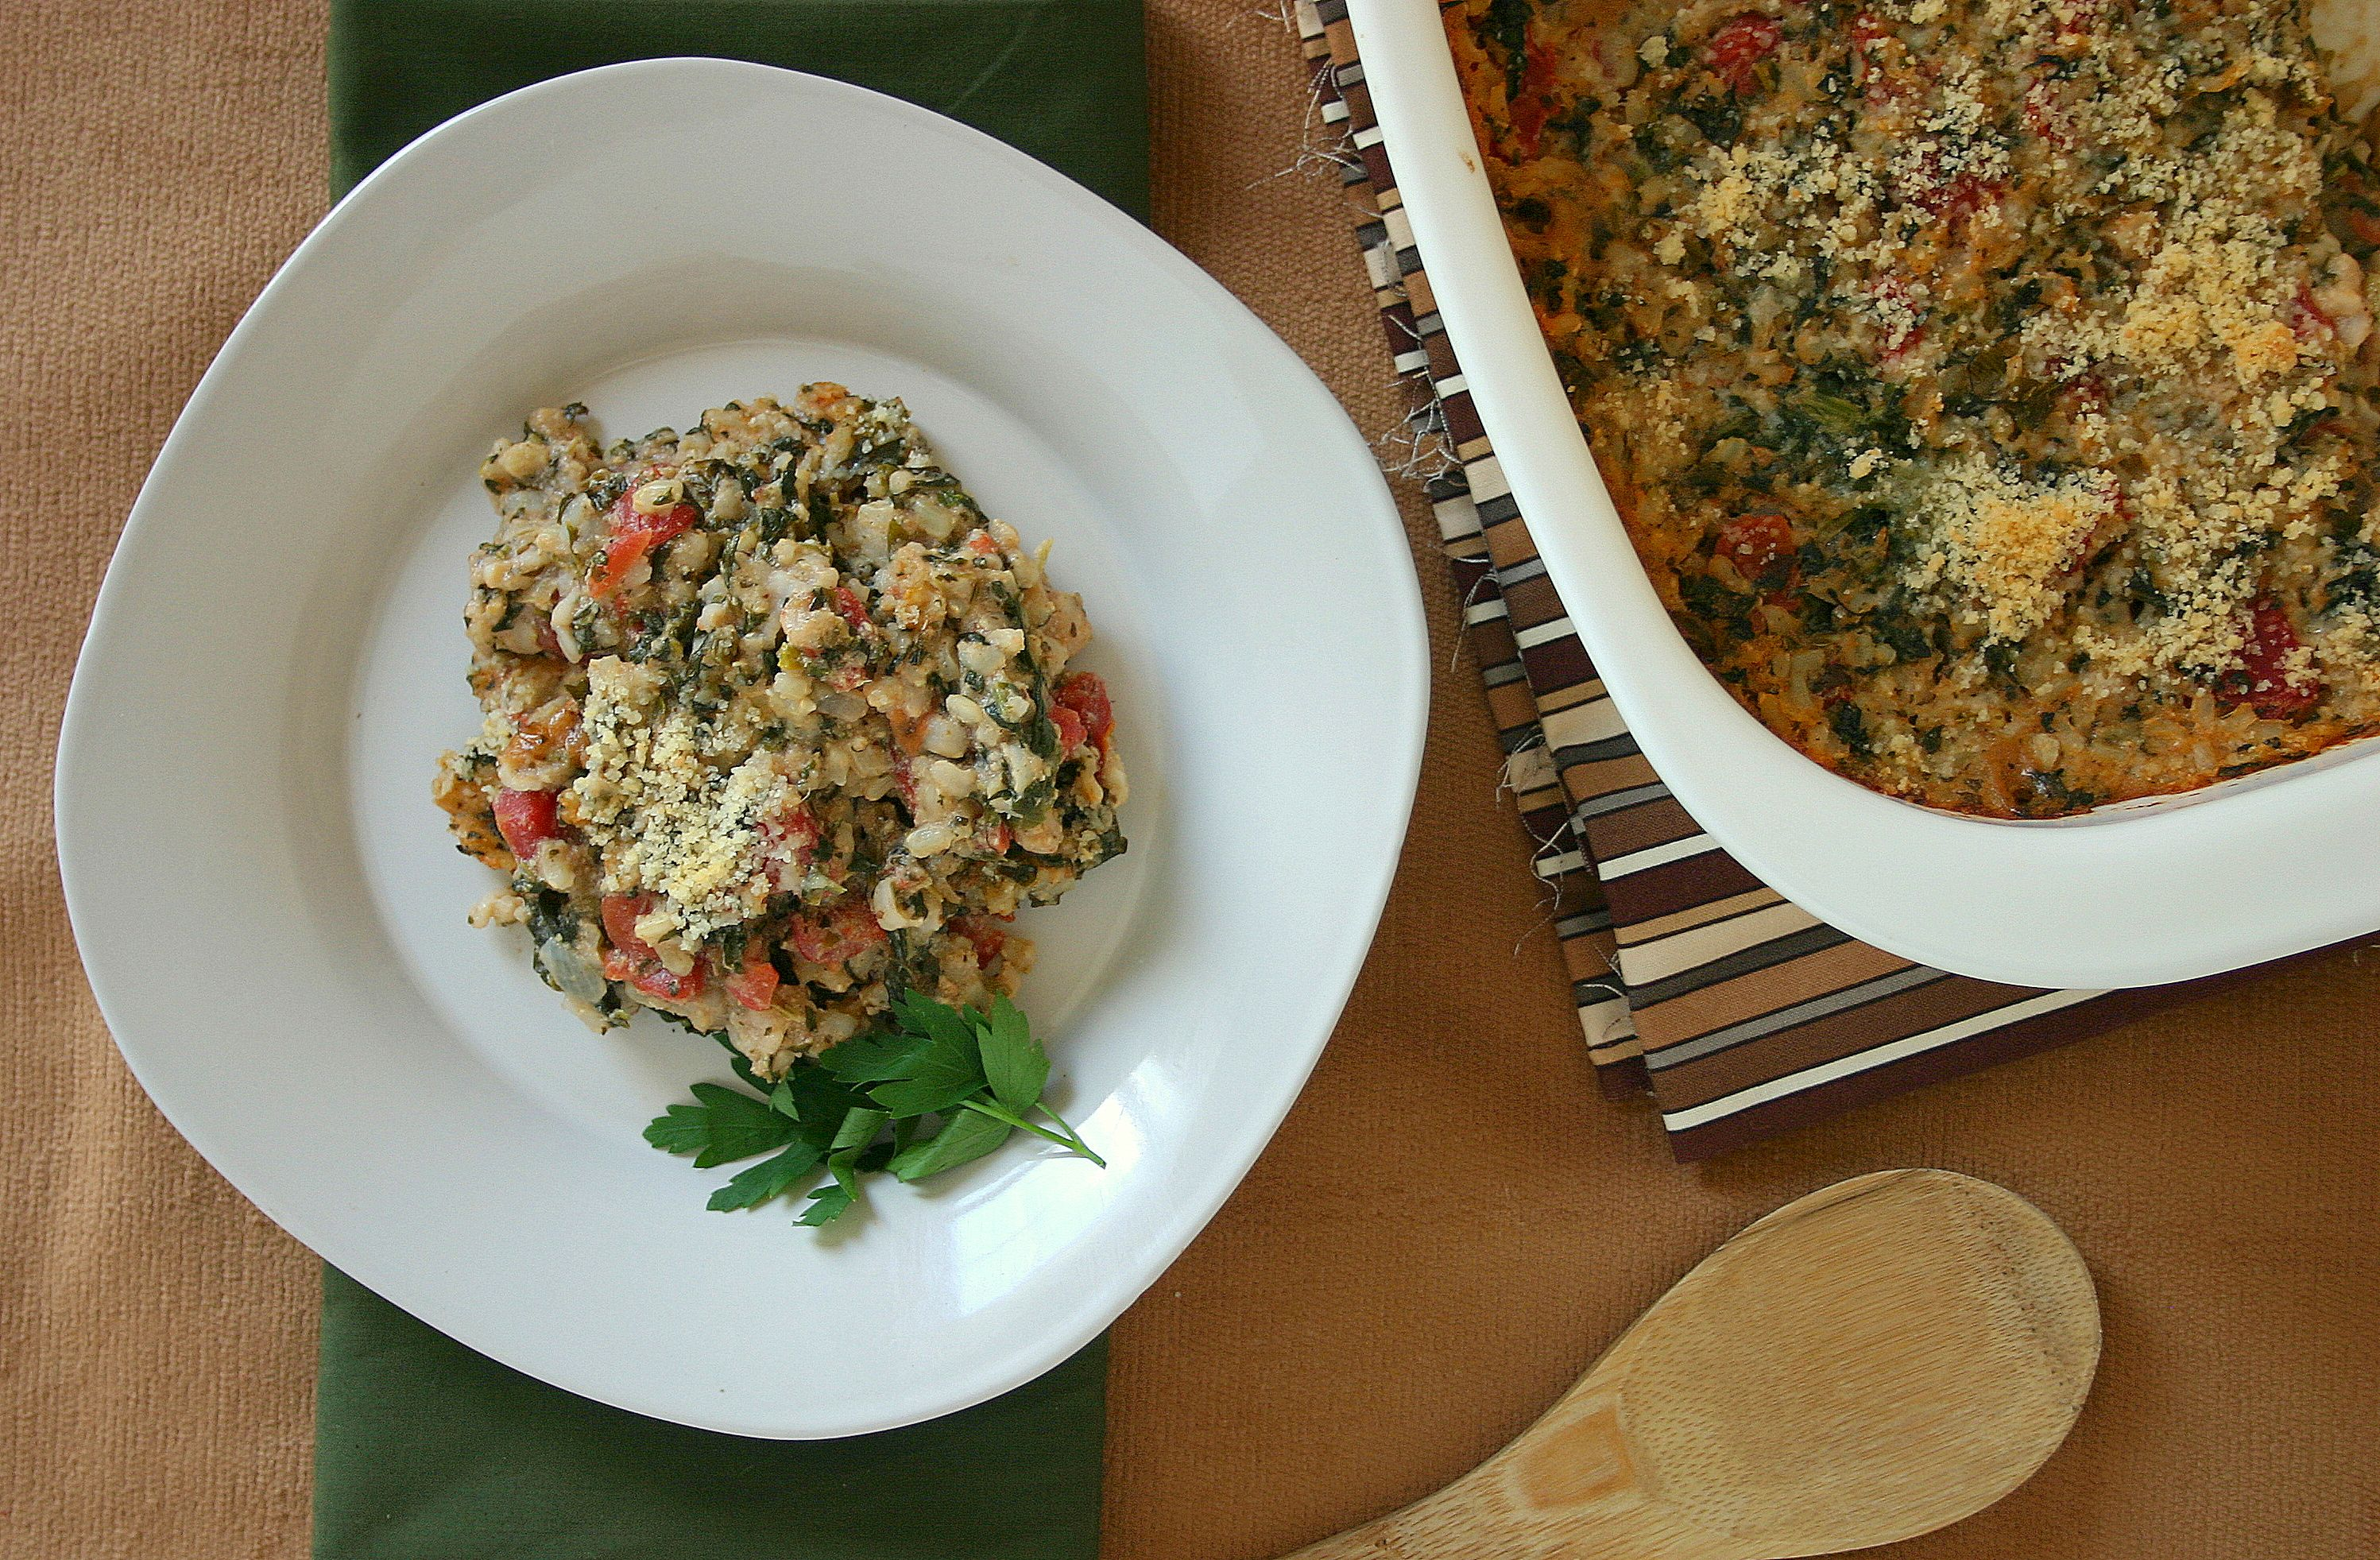 Hearty Baked Spinach And Tofu Casserole: http://ow.ly/cc7H0